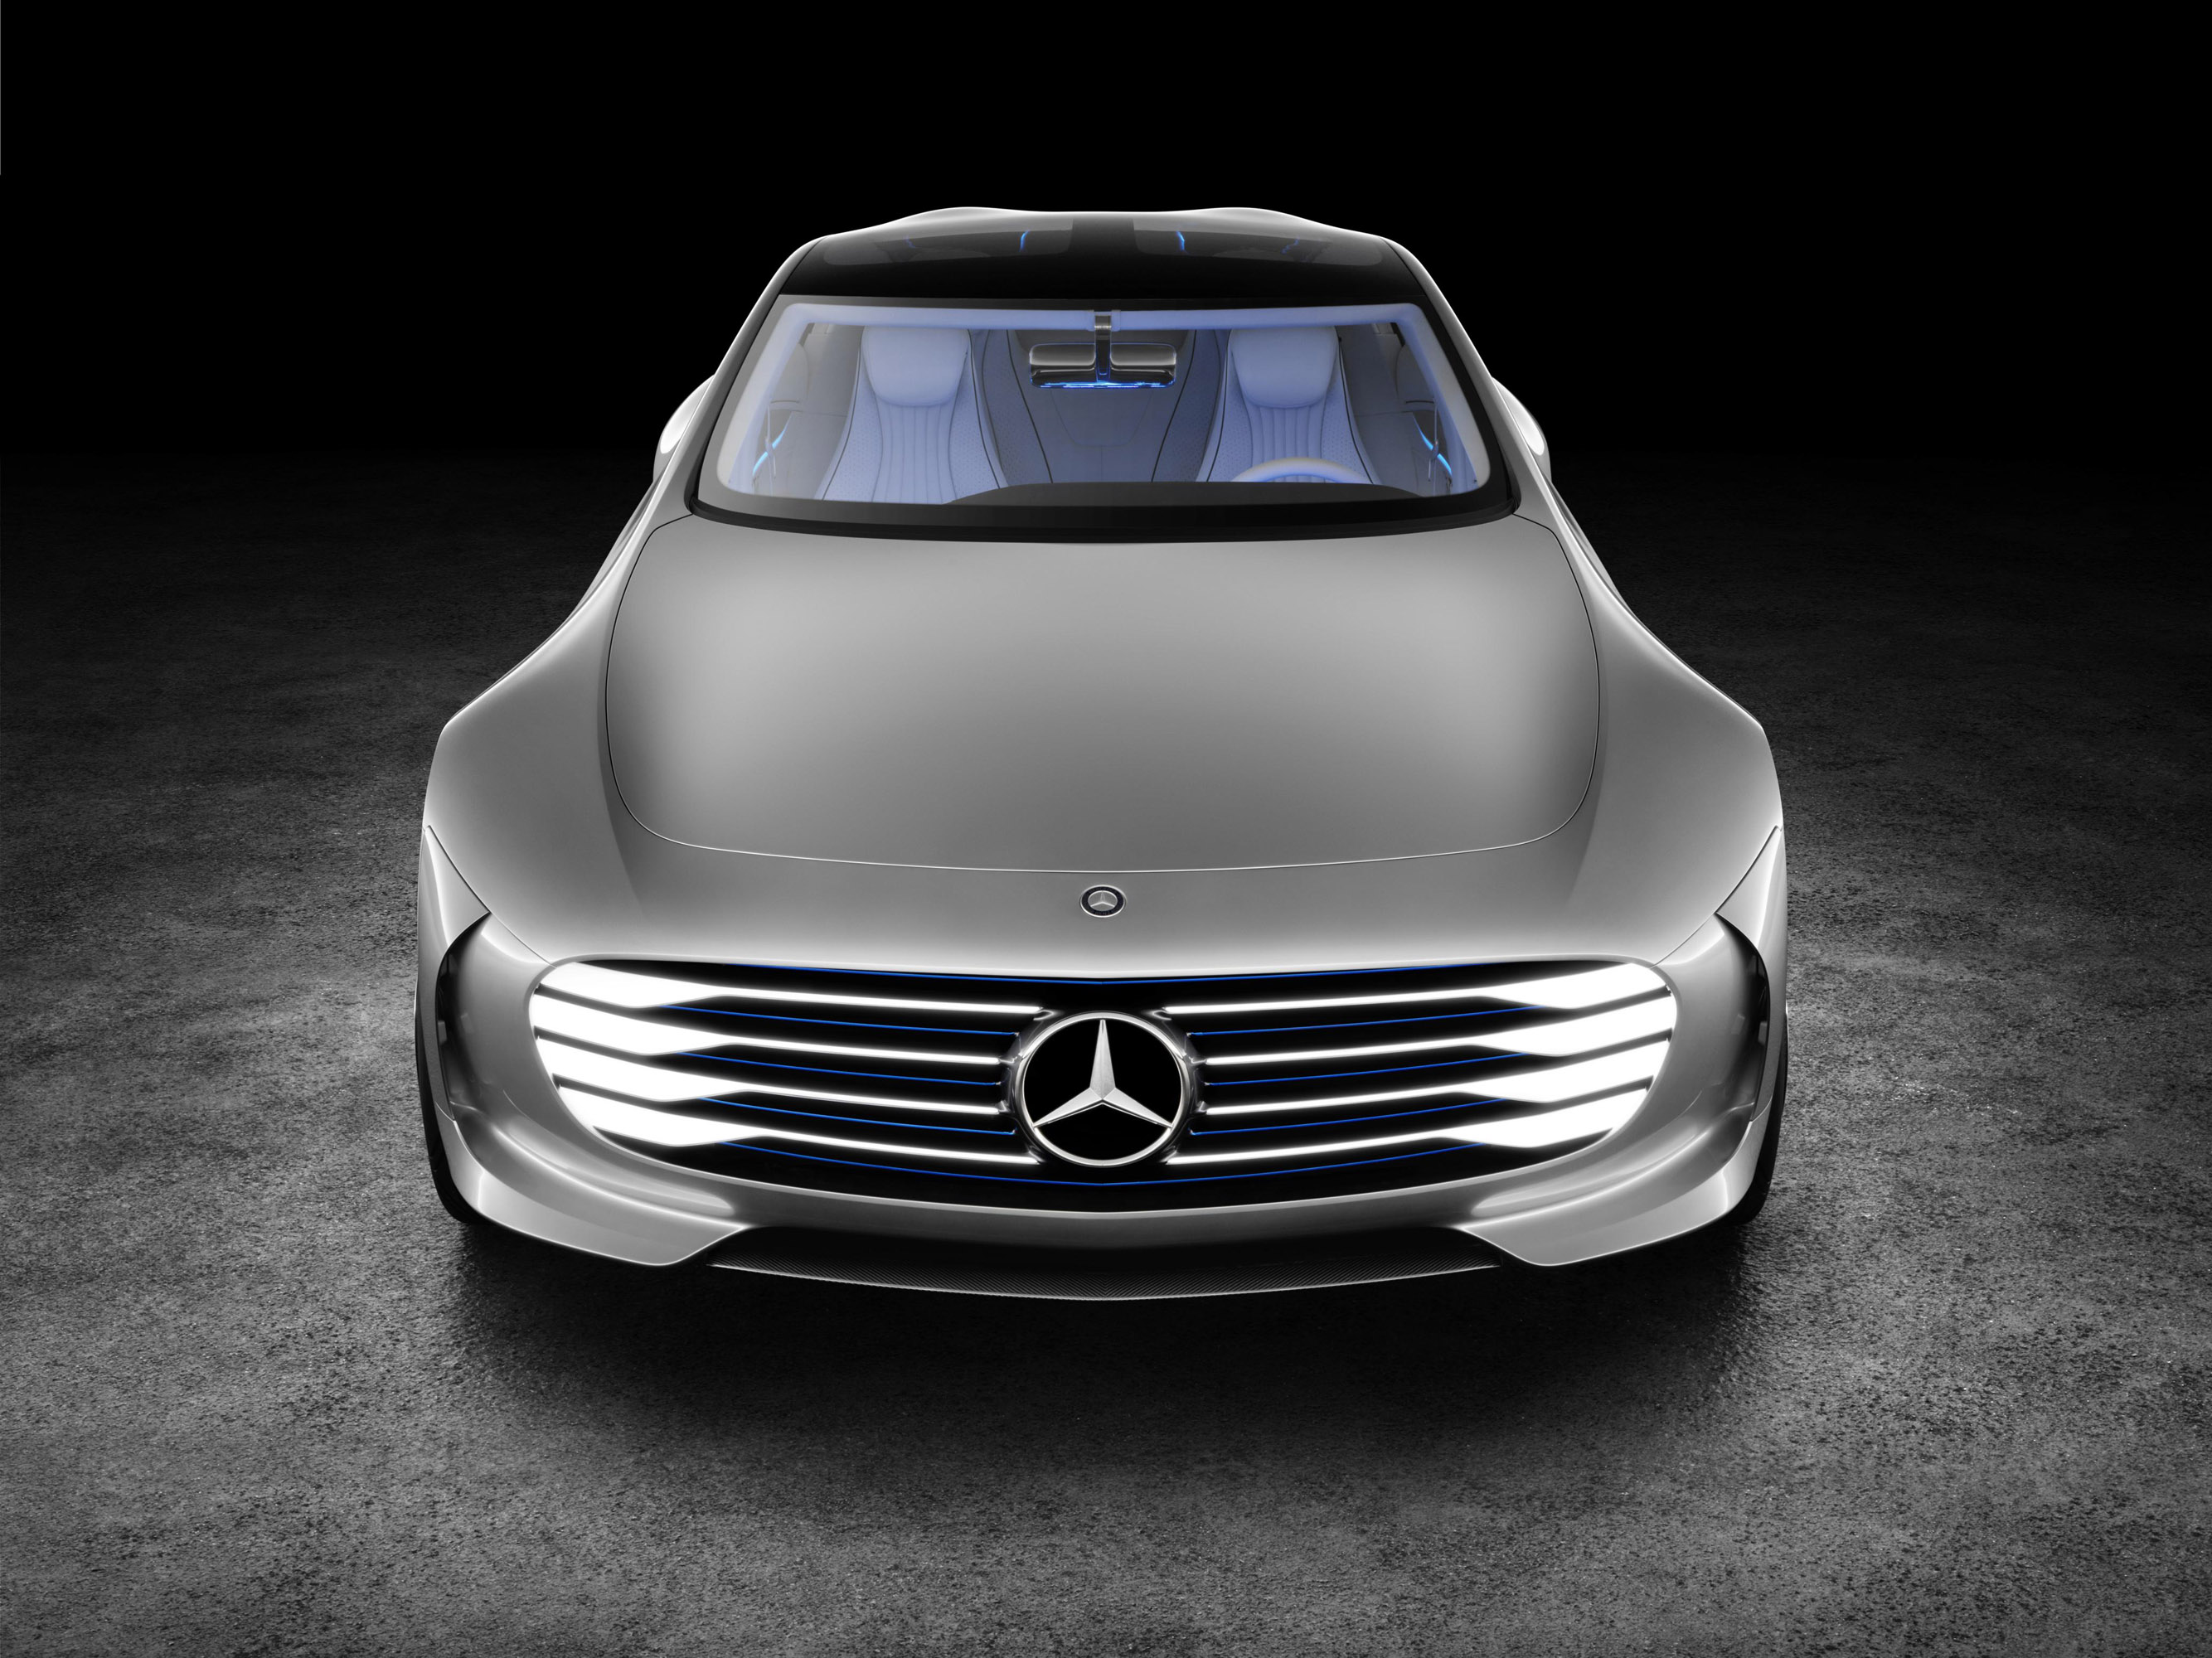 Mercedes benz concept iaa too much future in the present for Where do they make mercedes benz